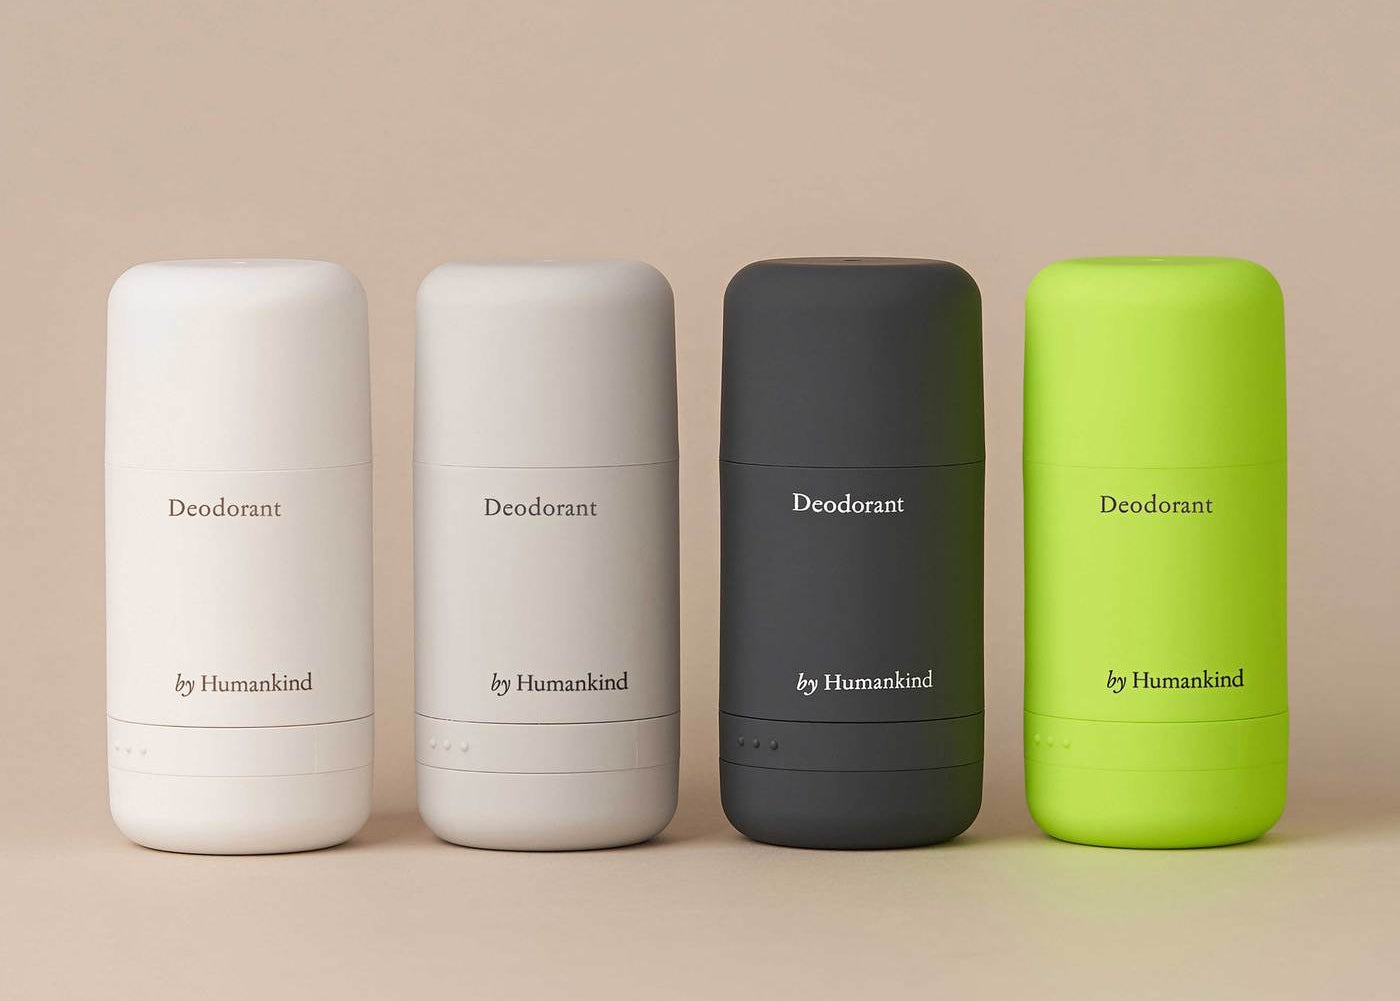 by humankind deodorant